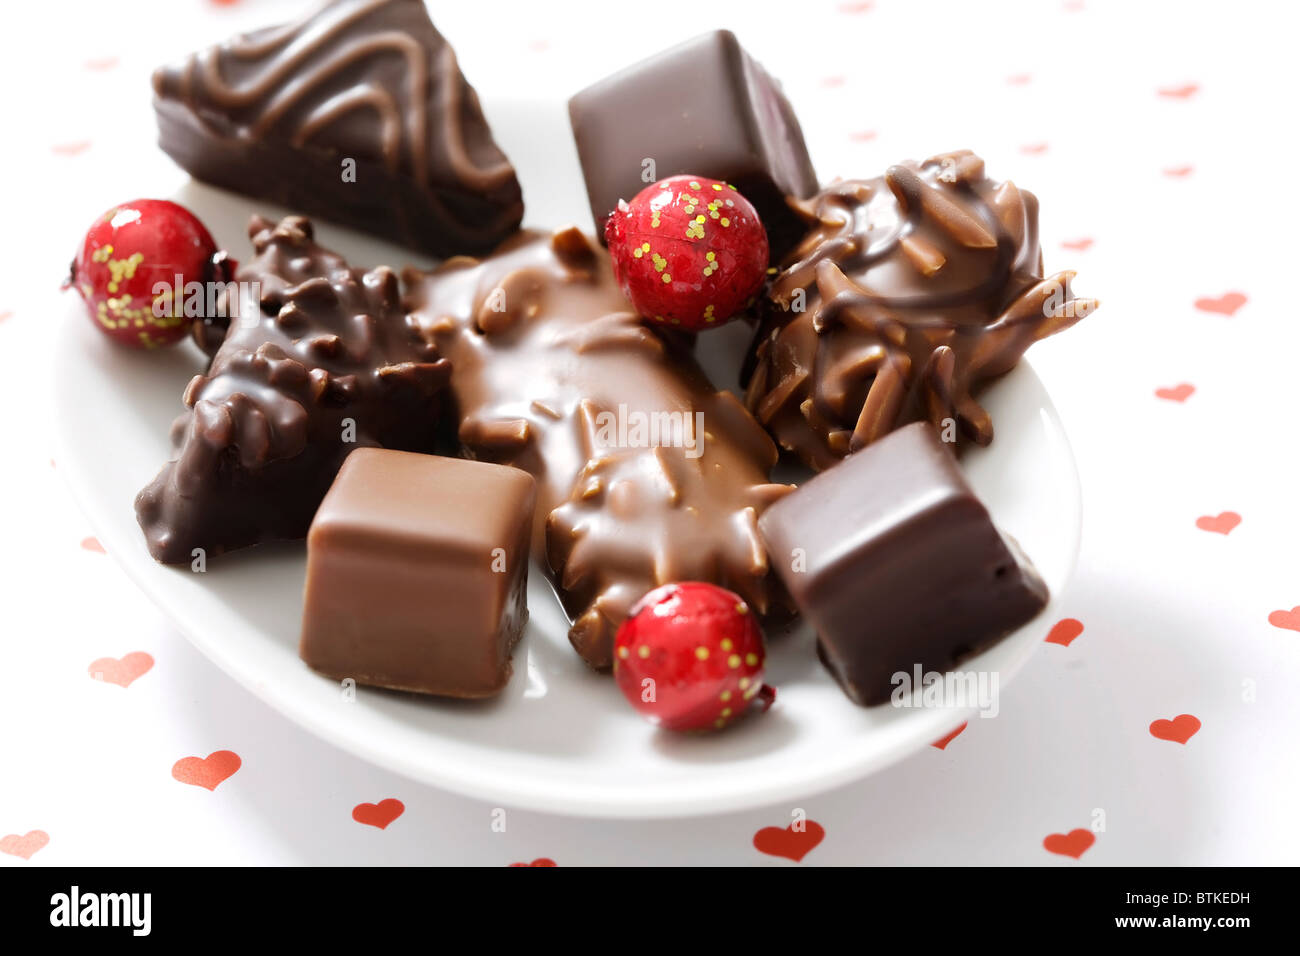 assortment of chocolate covered gingerbread with almonds and nuts - Stock Image